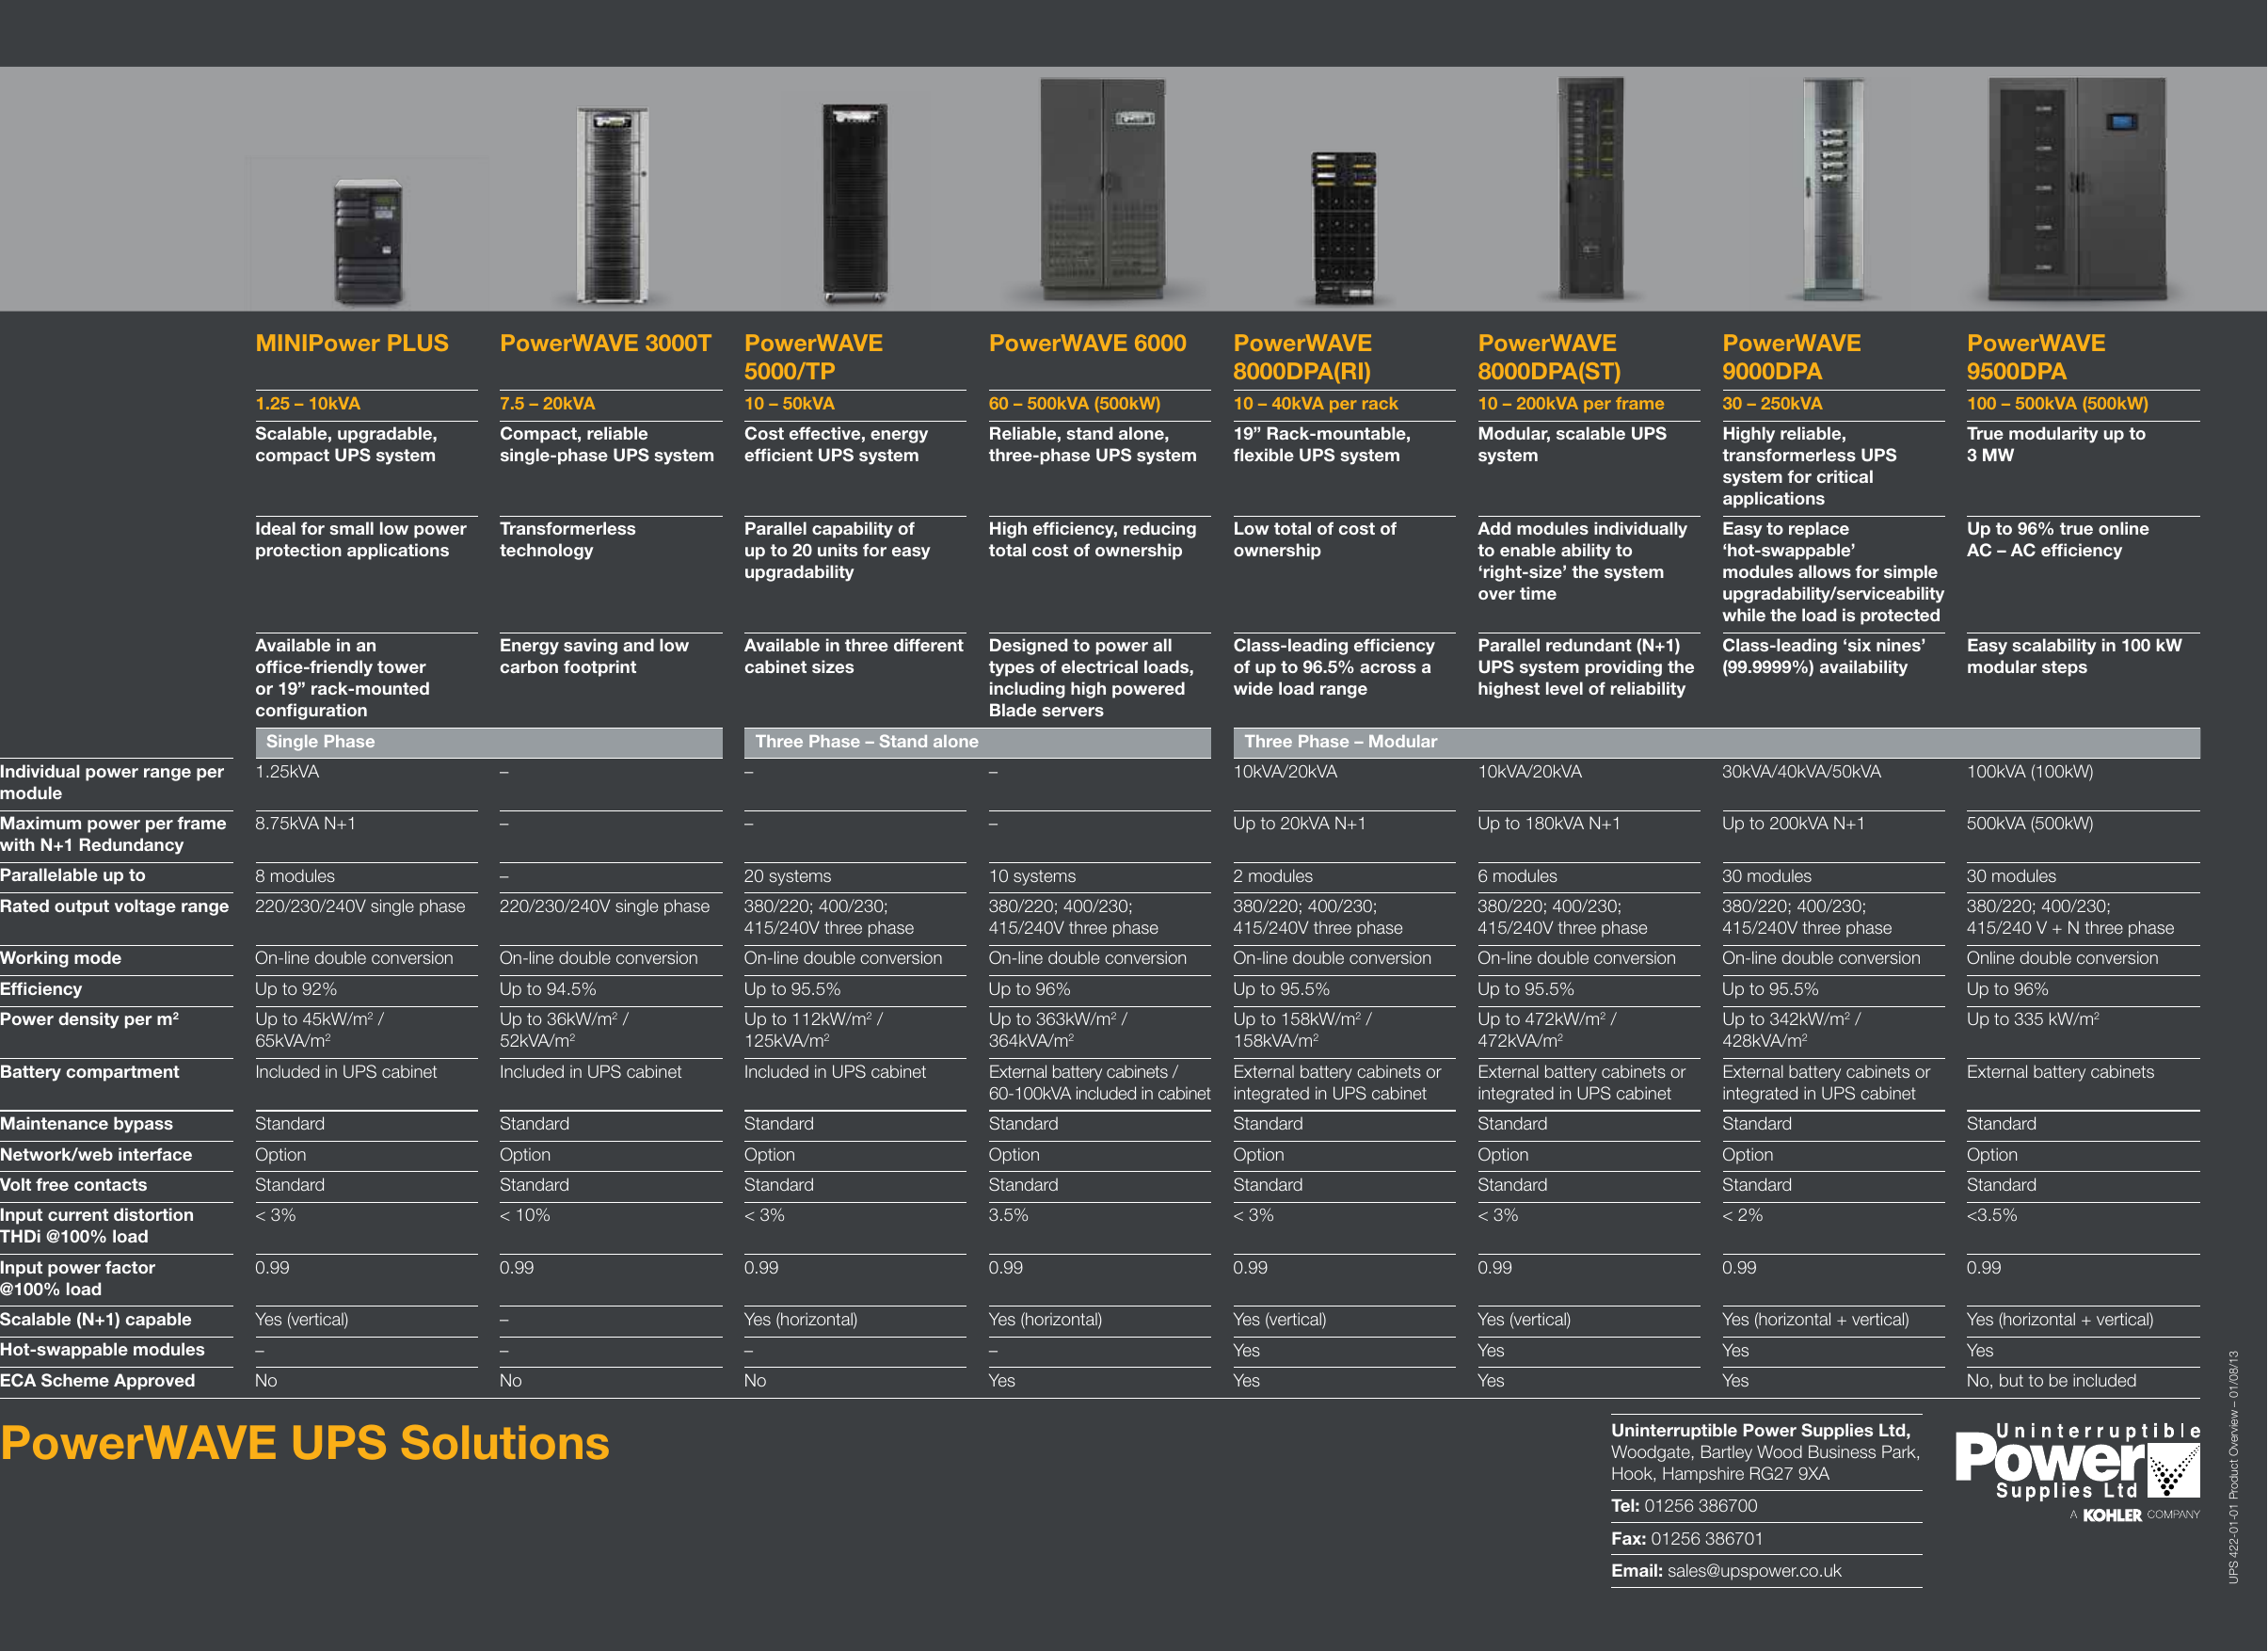 UPS 422 01 Product Overview